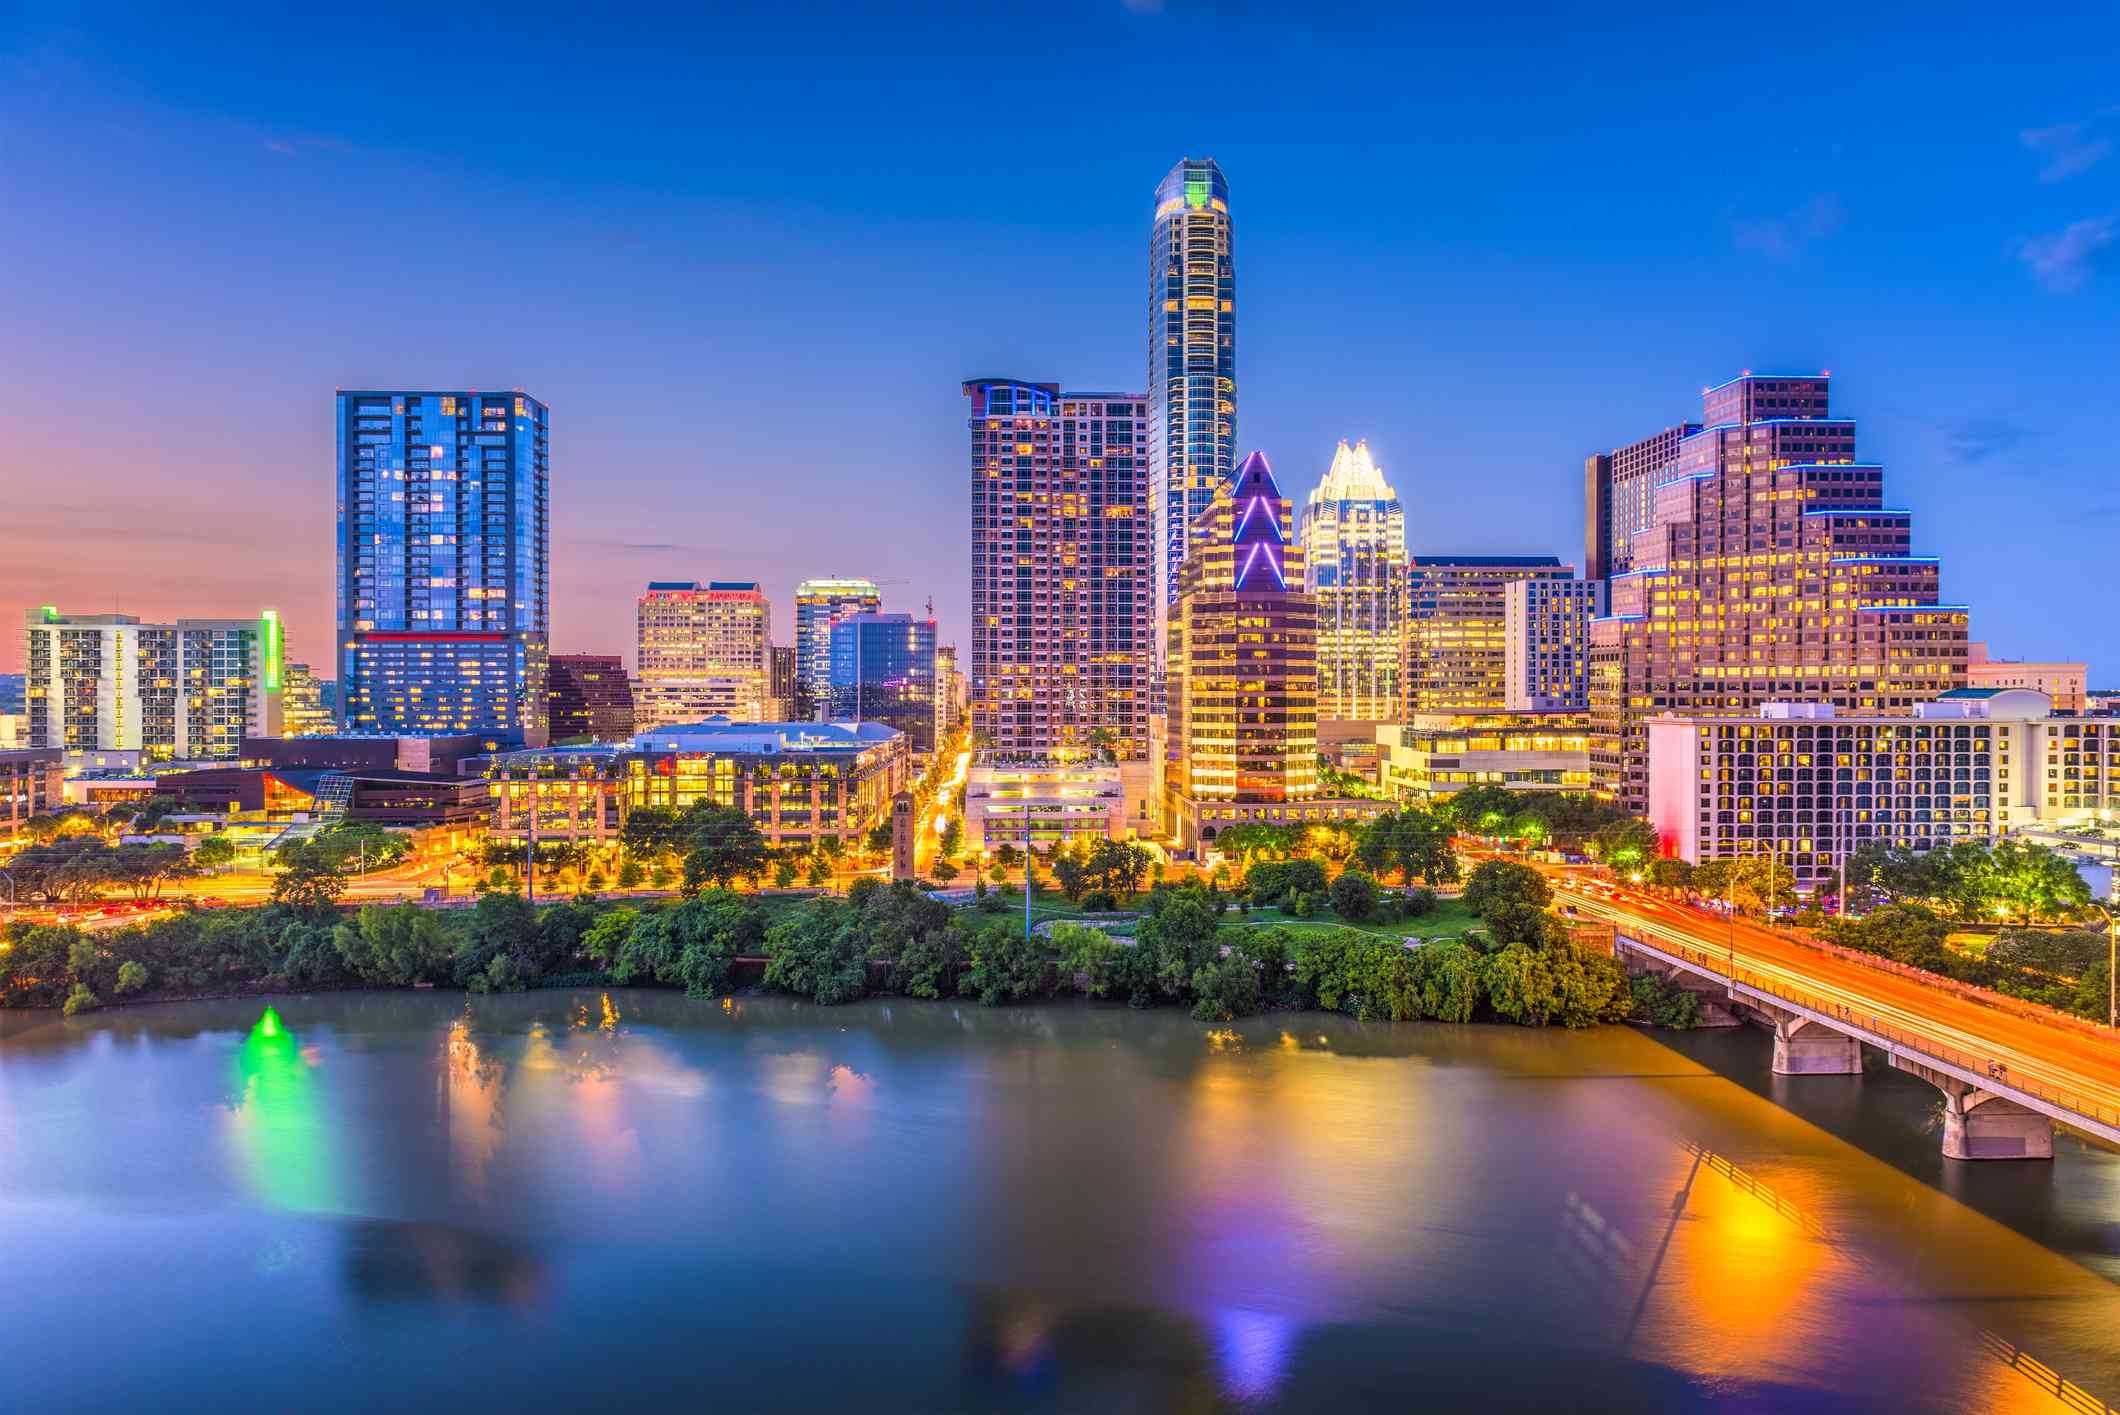 downtown skyline of austin texas over the Colorado River at twilight